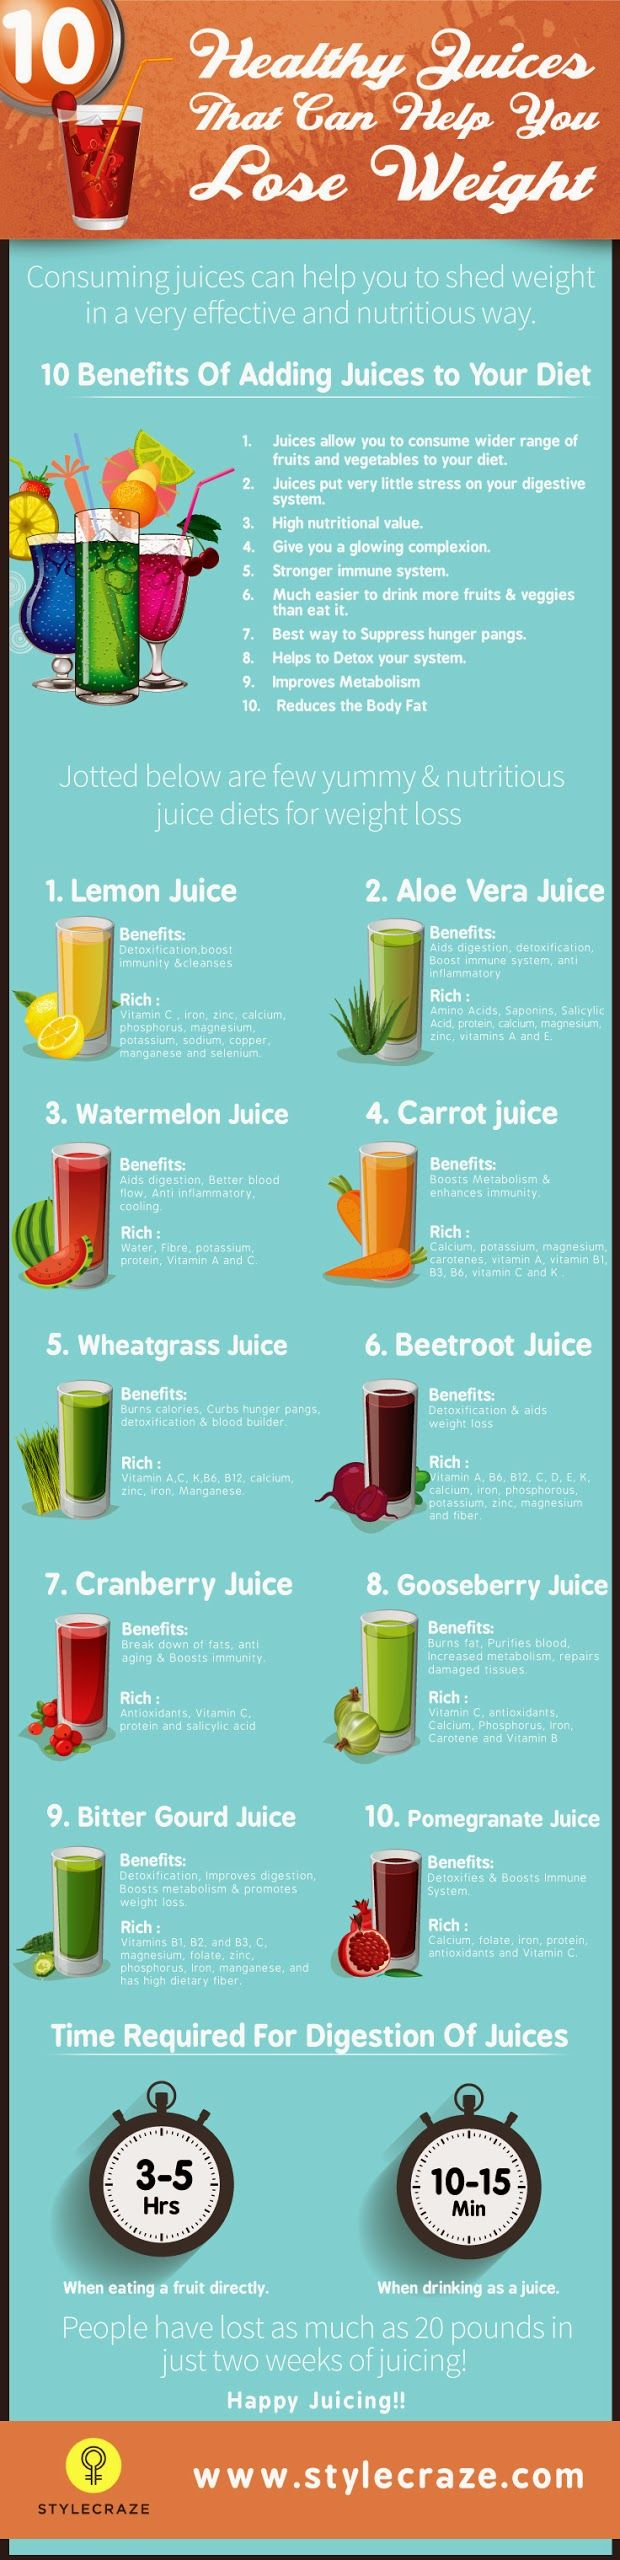 10 Healthy Juices To Lose Weight - Health Tips In Pics